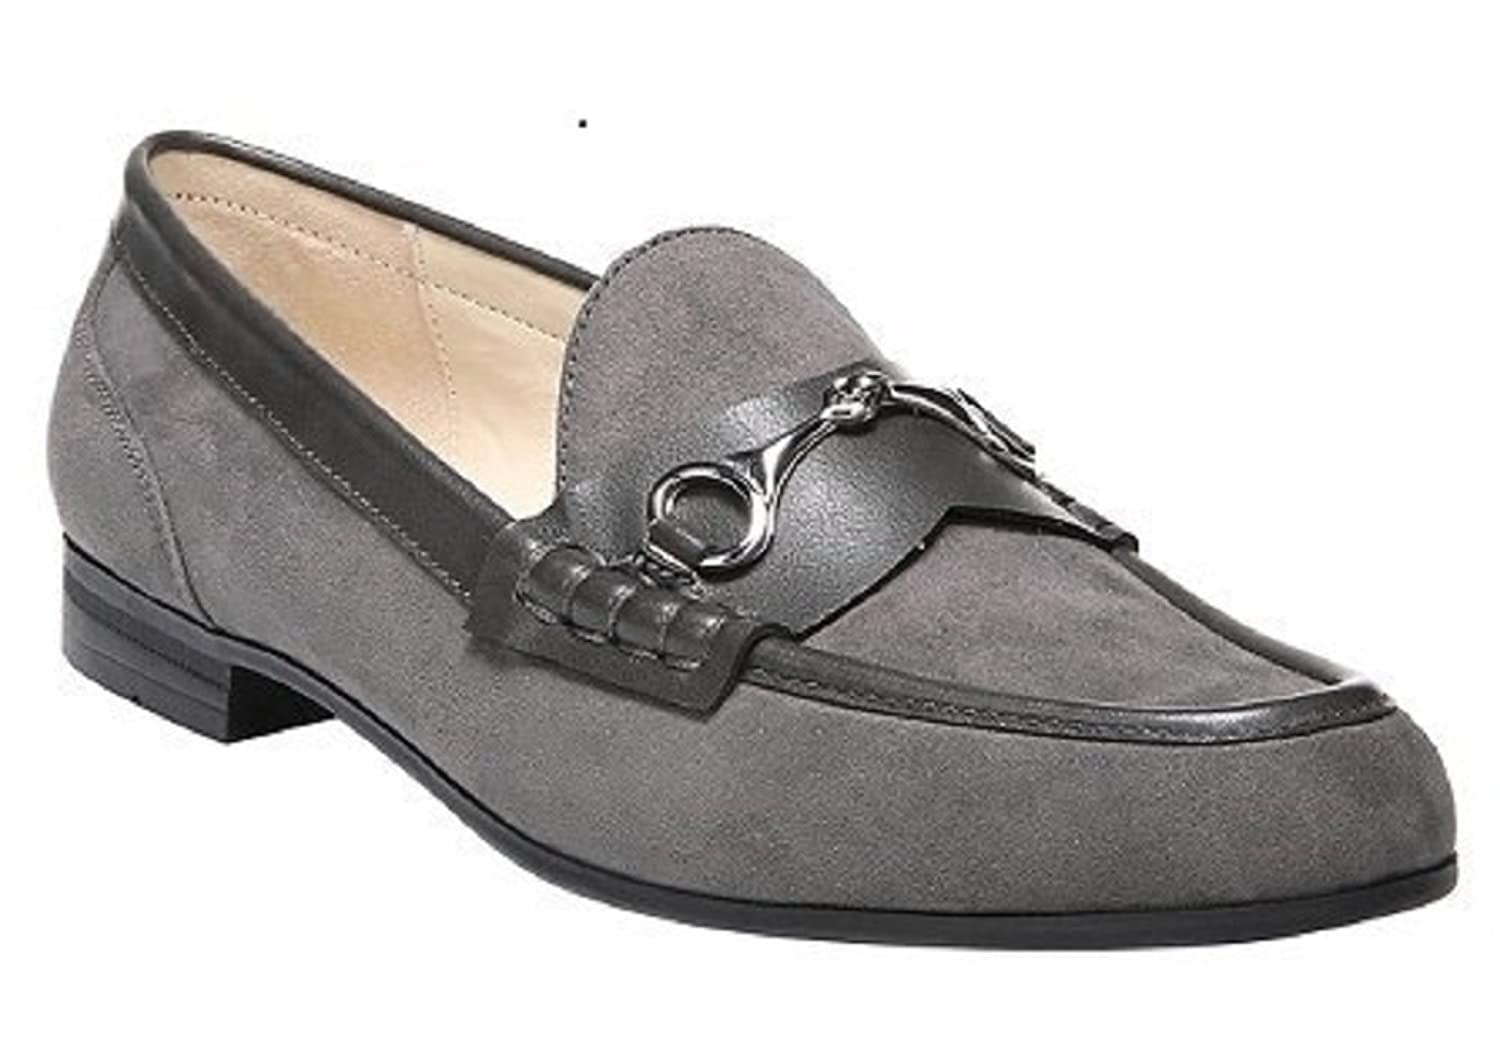 Sam & Libby Tayden Loafer in Grey (8)